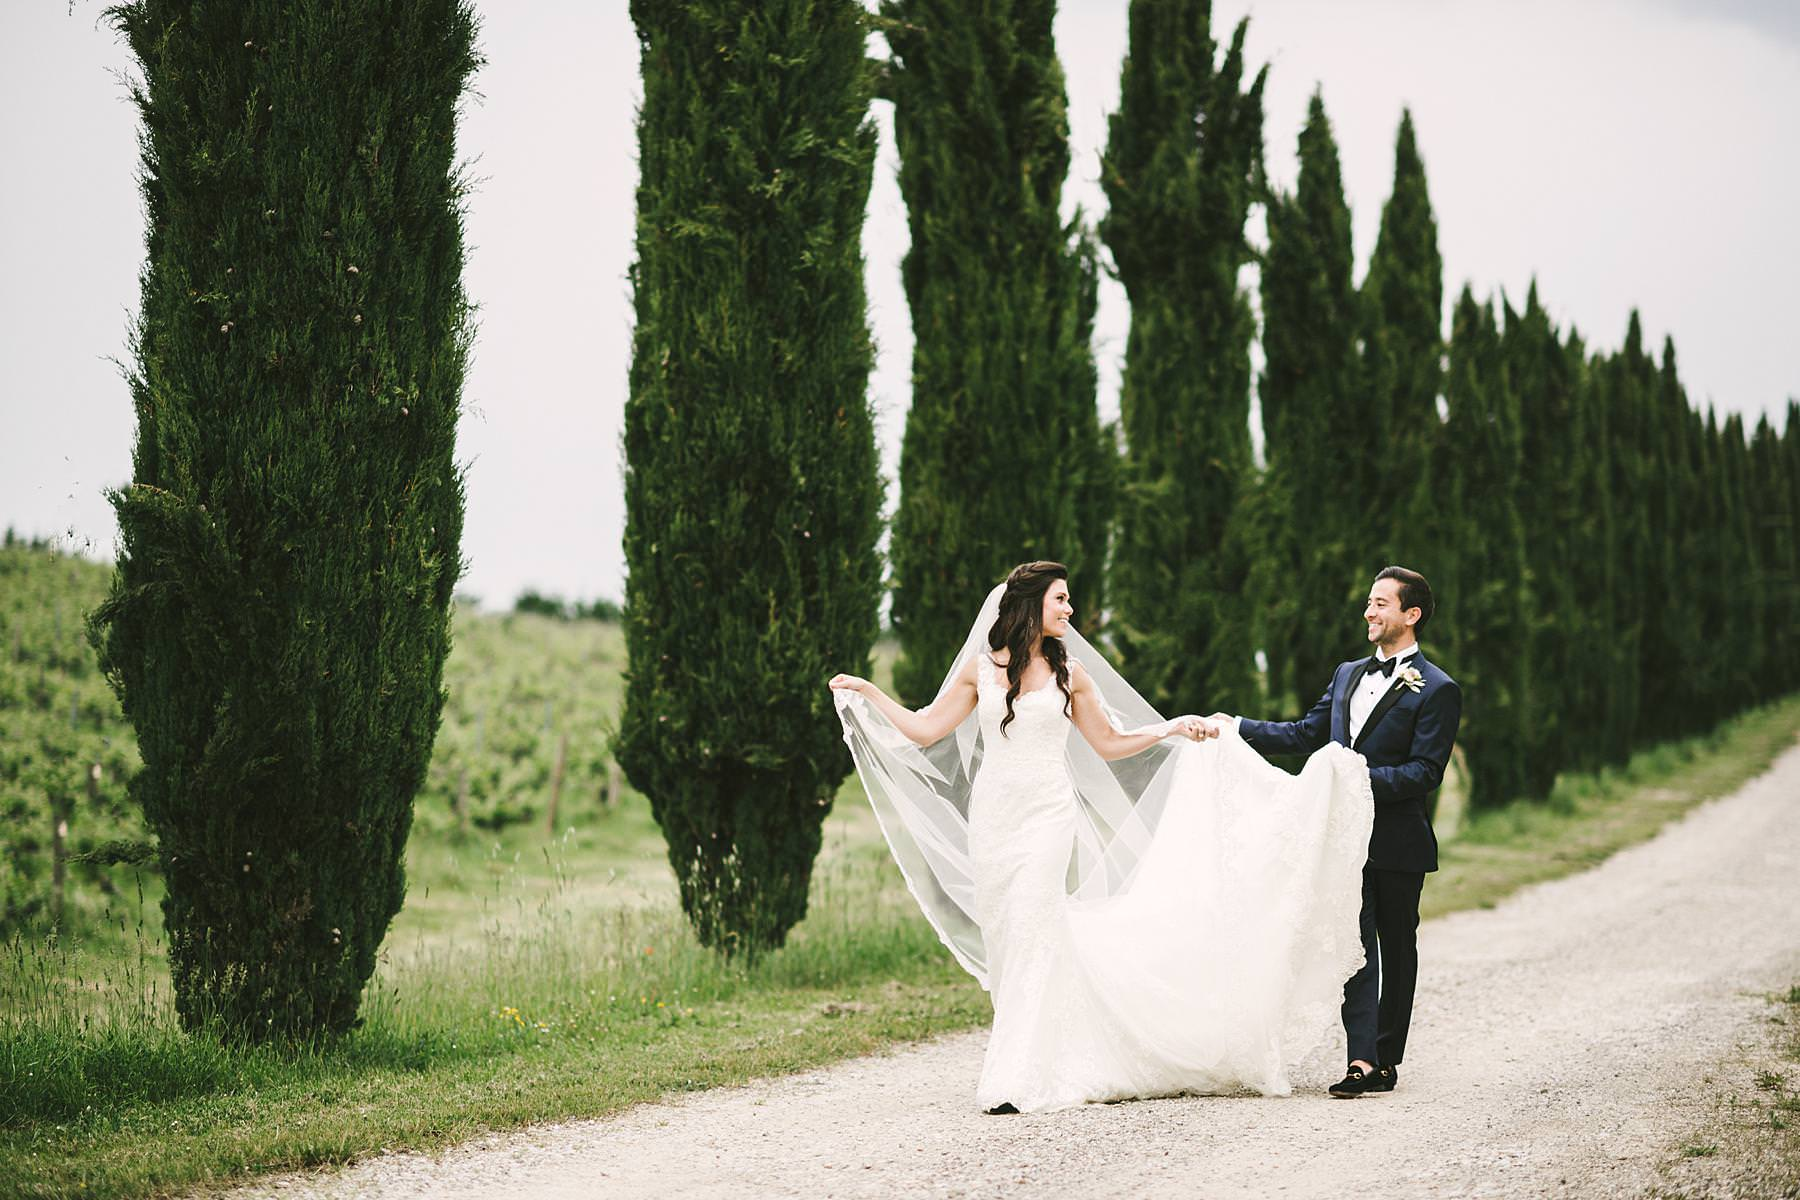 Beautiful and elegant bride and groom wedding portrait at Villa La Selva Wine Resort historic estate evocative cypresses street in Tuscany countryside